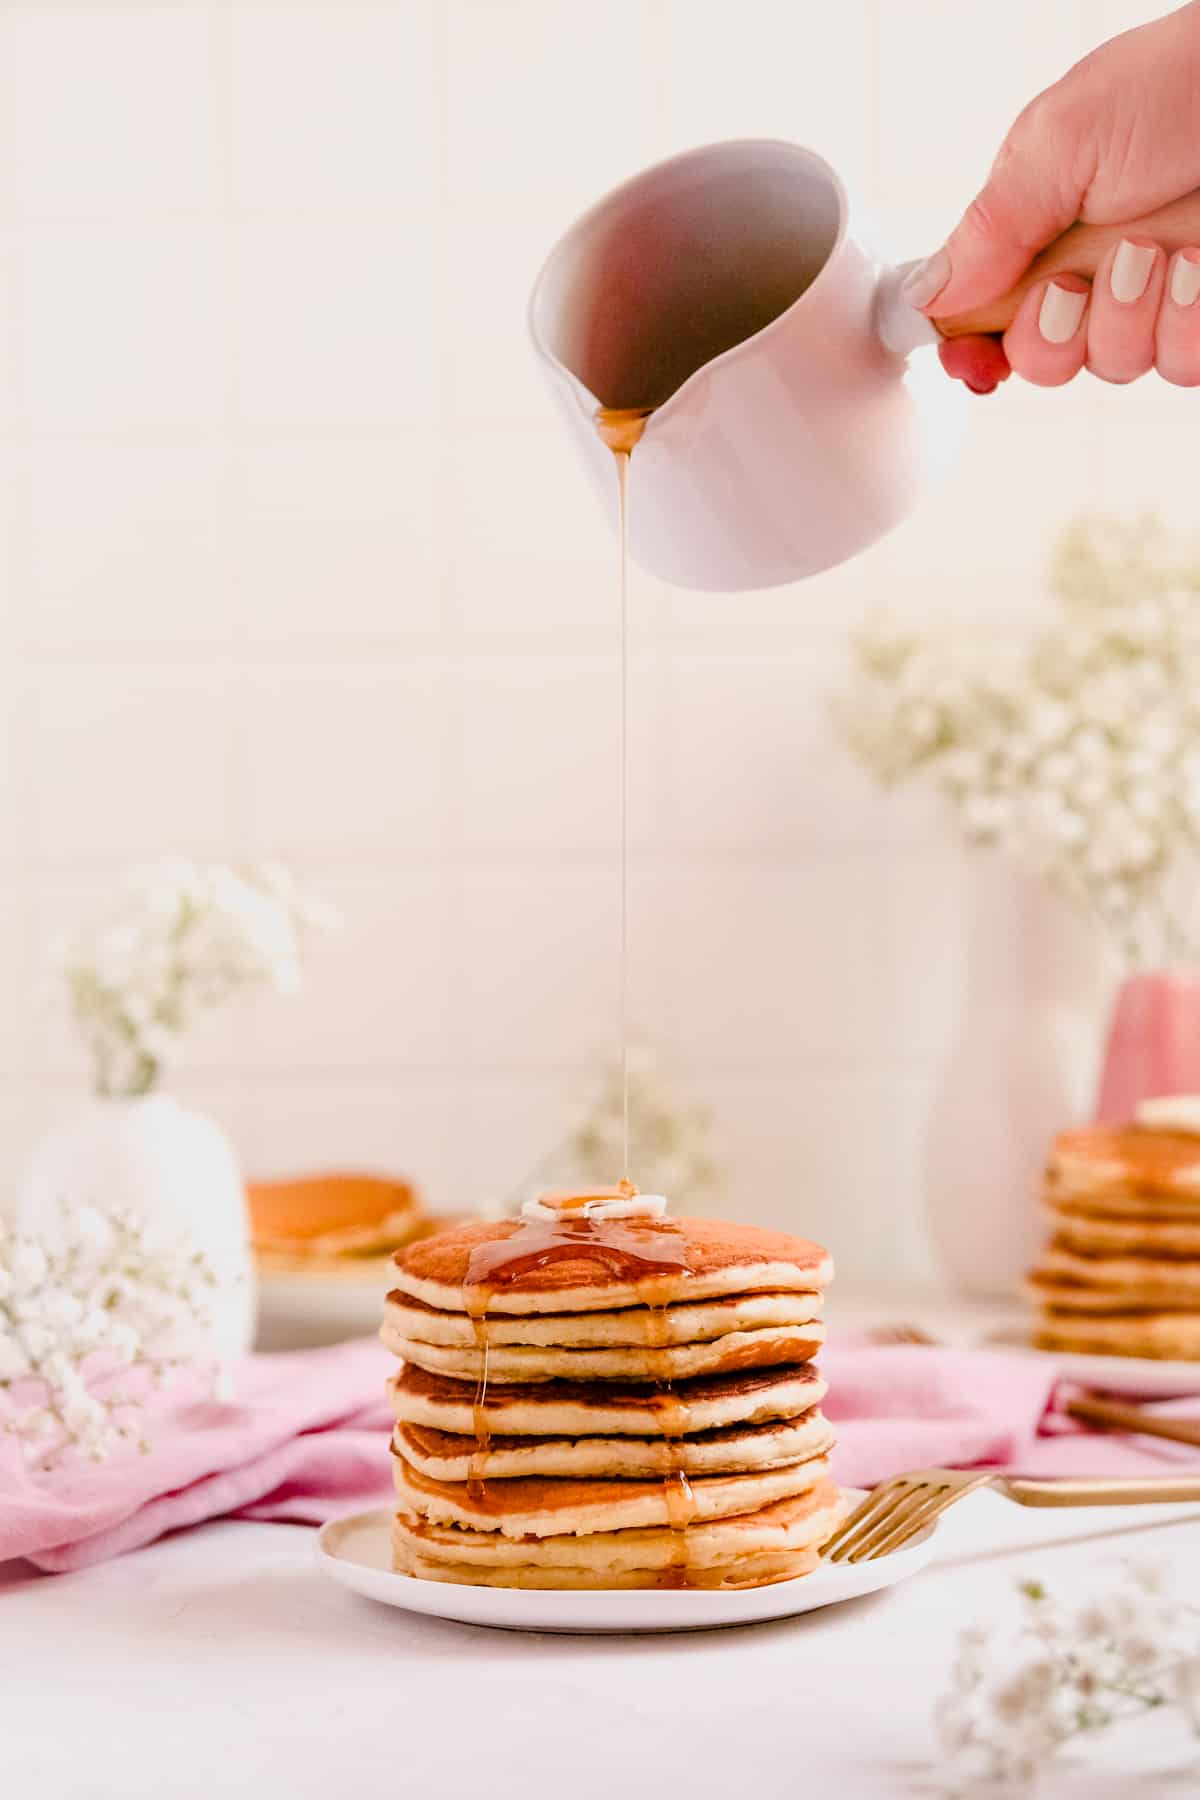 a stack of buttermilk pancakes with butter and syrup being poured on top